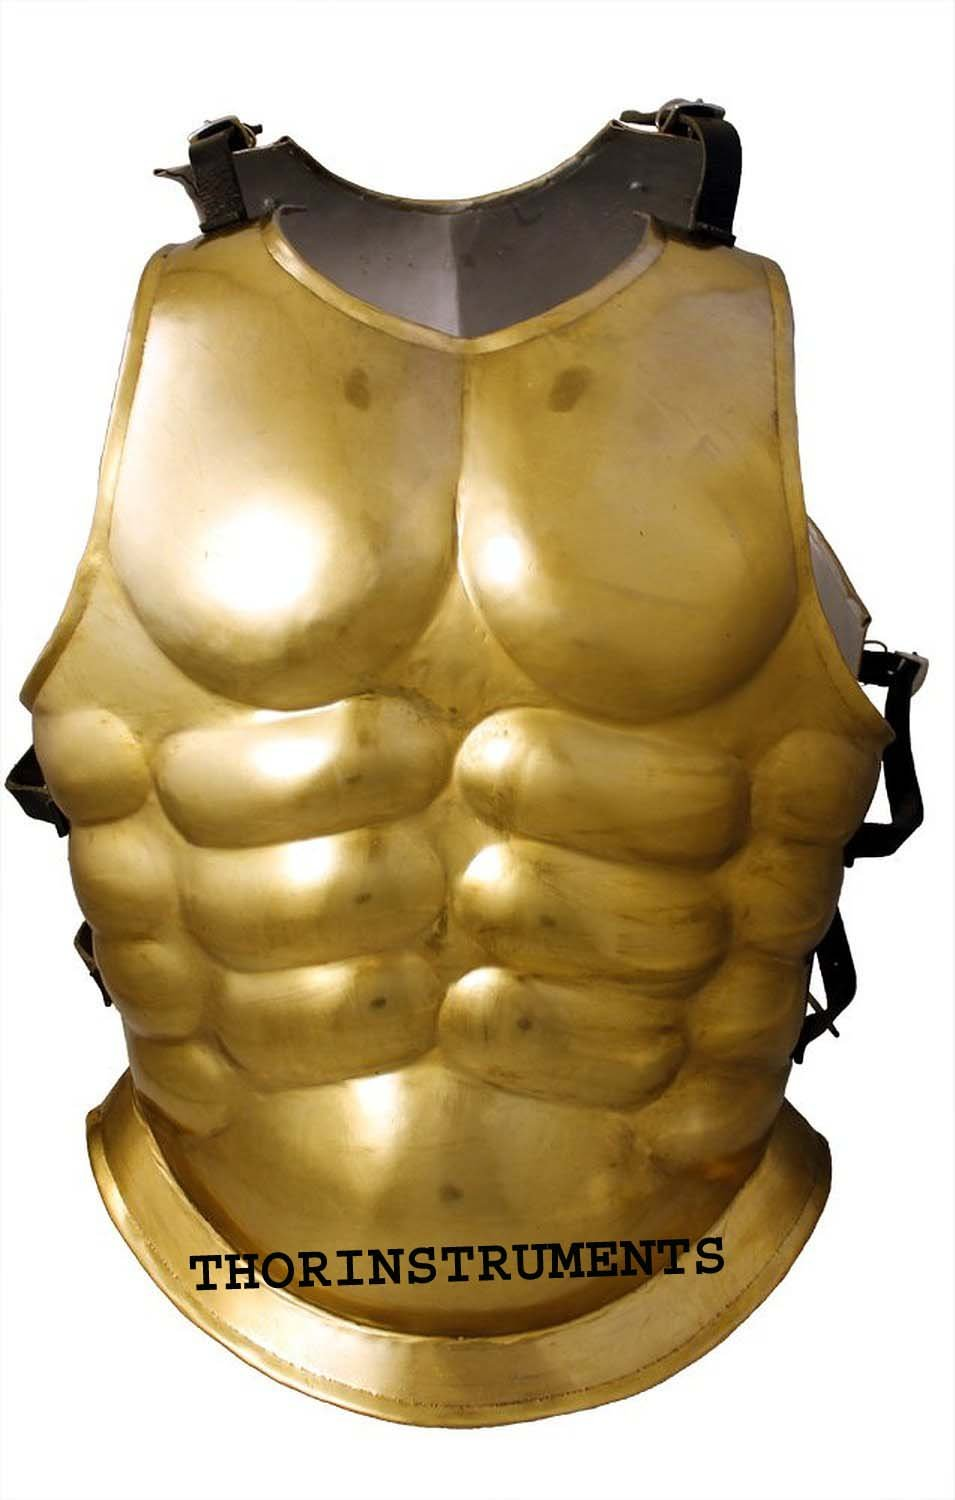 THORINSTRUMENTS Armor Brass Muscle Jacket Cuirass Wearable Greek Muscle Renactment Costume CO by THORINSTRUMENTS